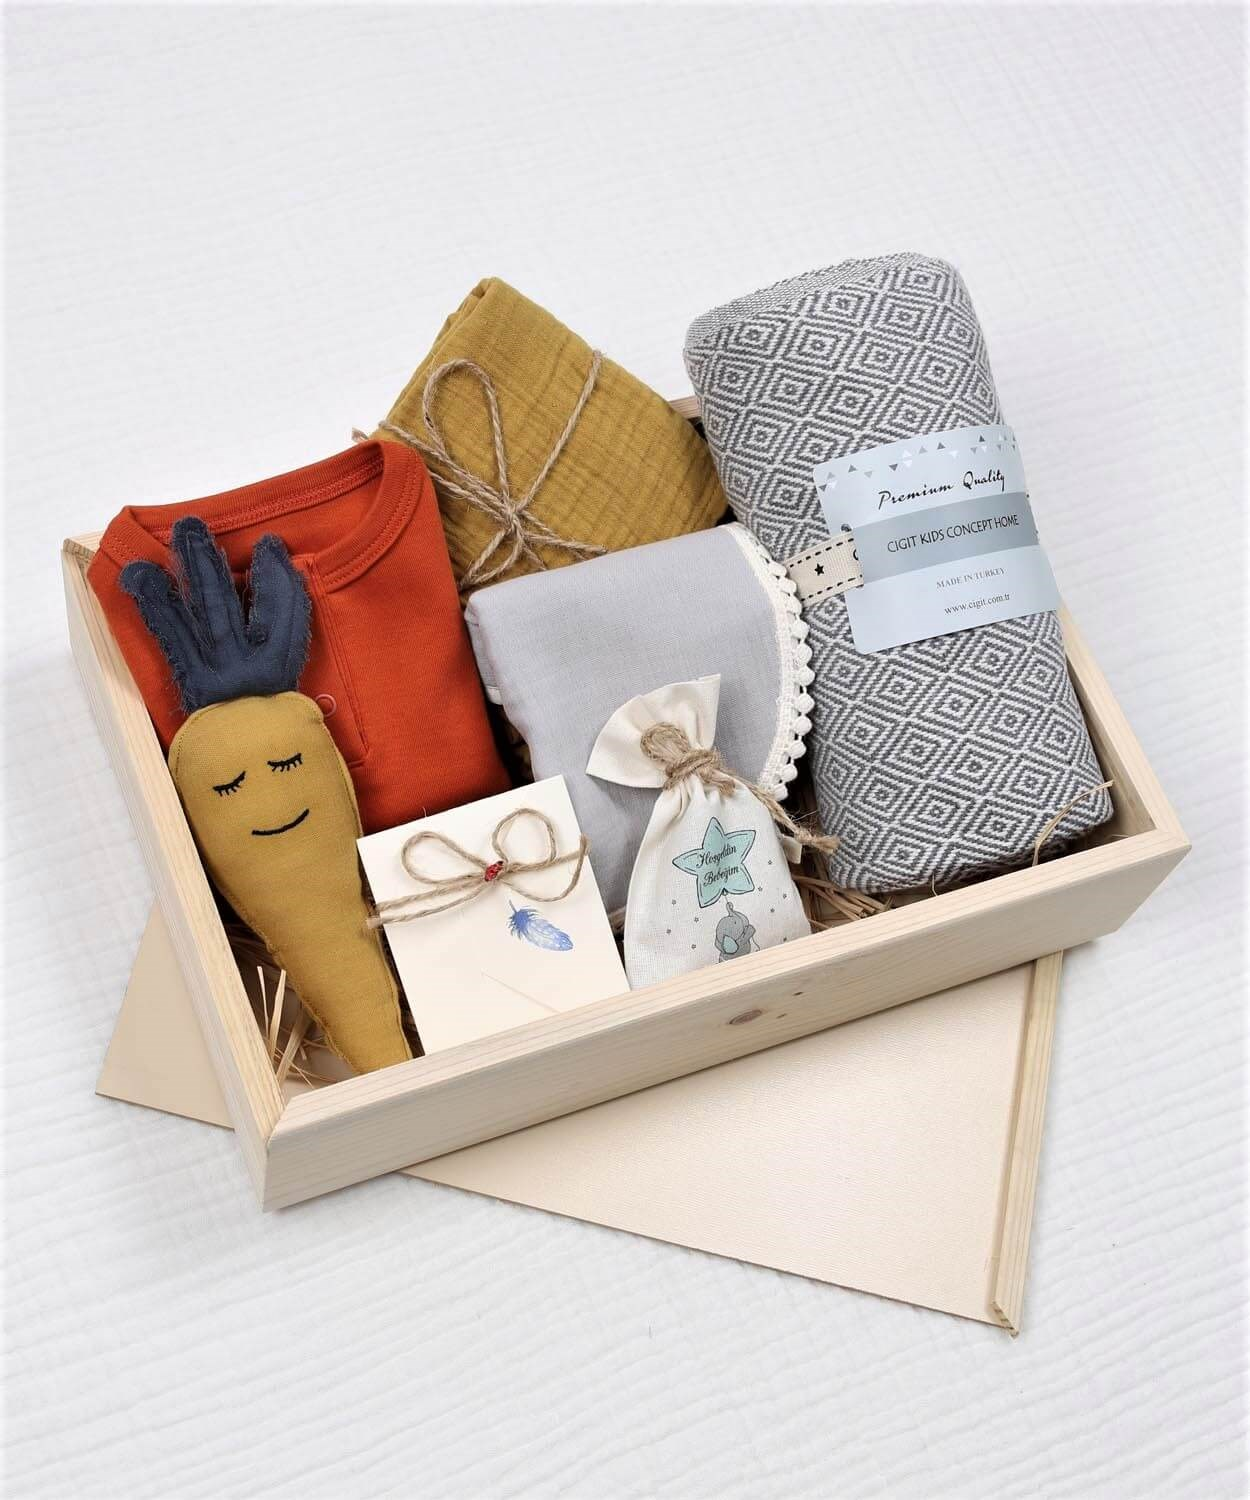 Baby Bodysuit 100% Cotton knitwear Snapsuit, Muslin Blanket, Apron, Toy, Notepaper and Wooden Box for Boys and Girls Pack of 7